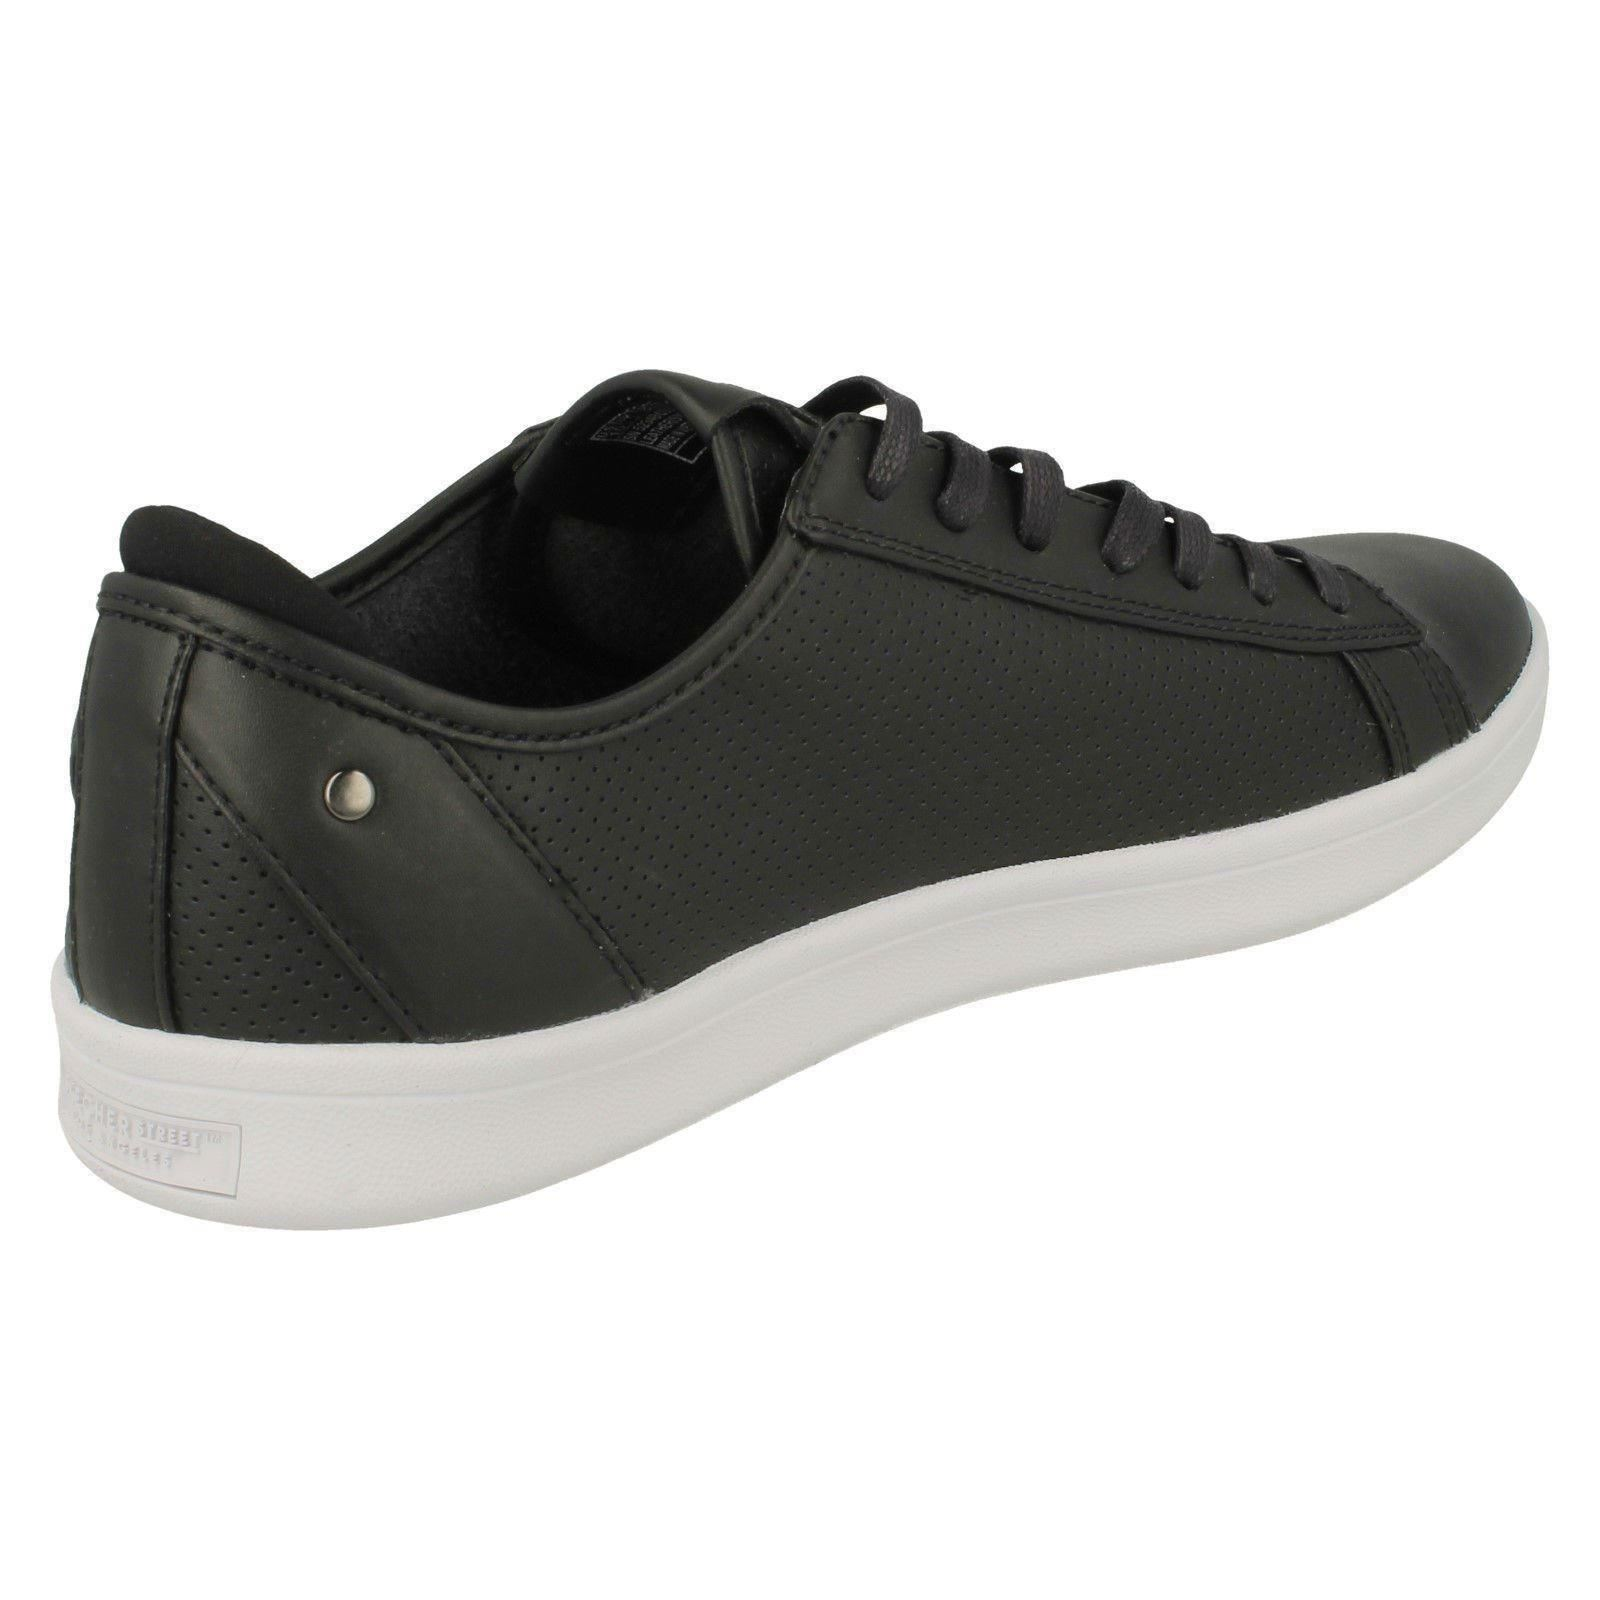 609fecbcd4d5 Mens Skechers Leather Rounded Toe Lace Up Casual Trainers -   Highland-T